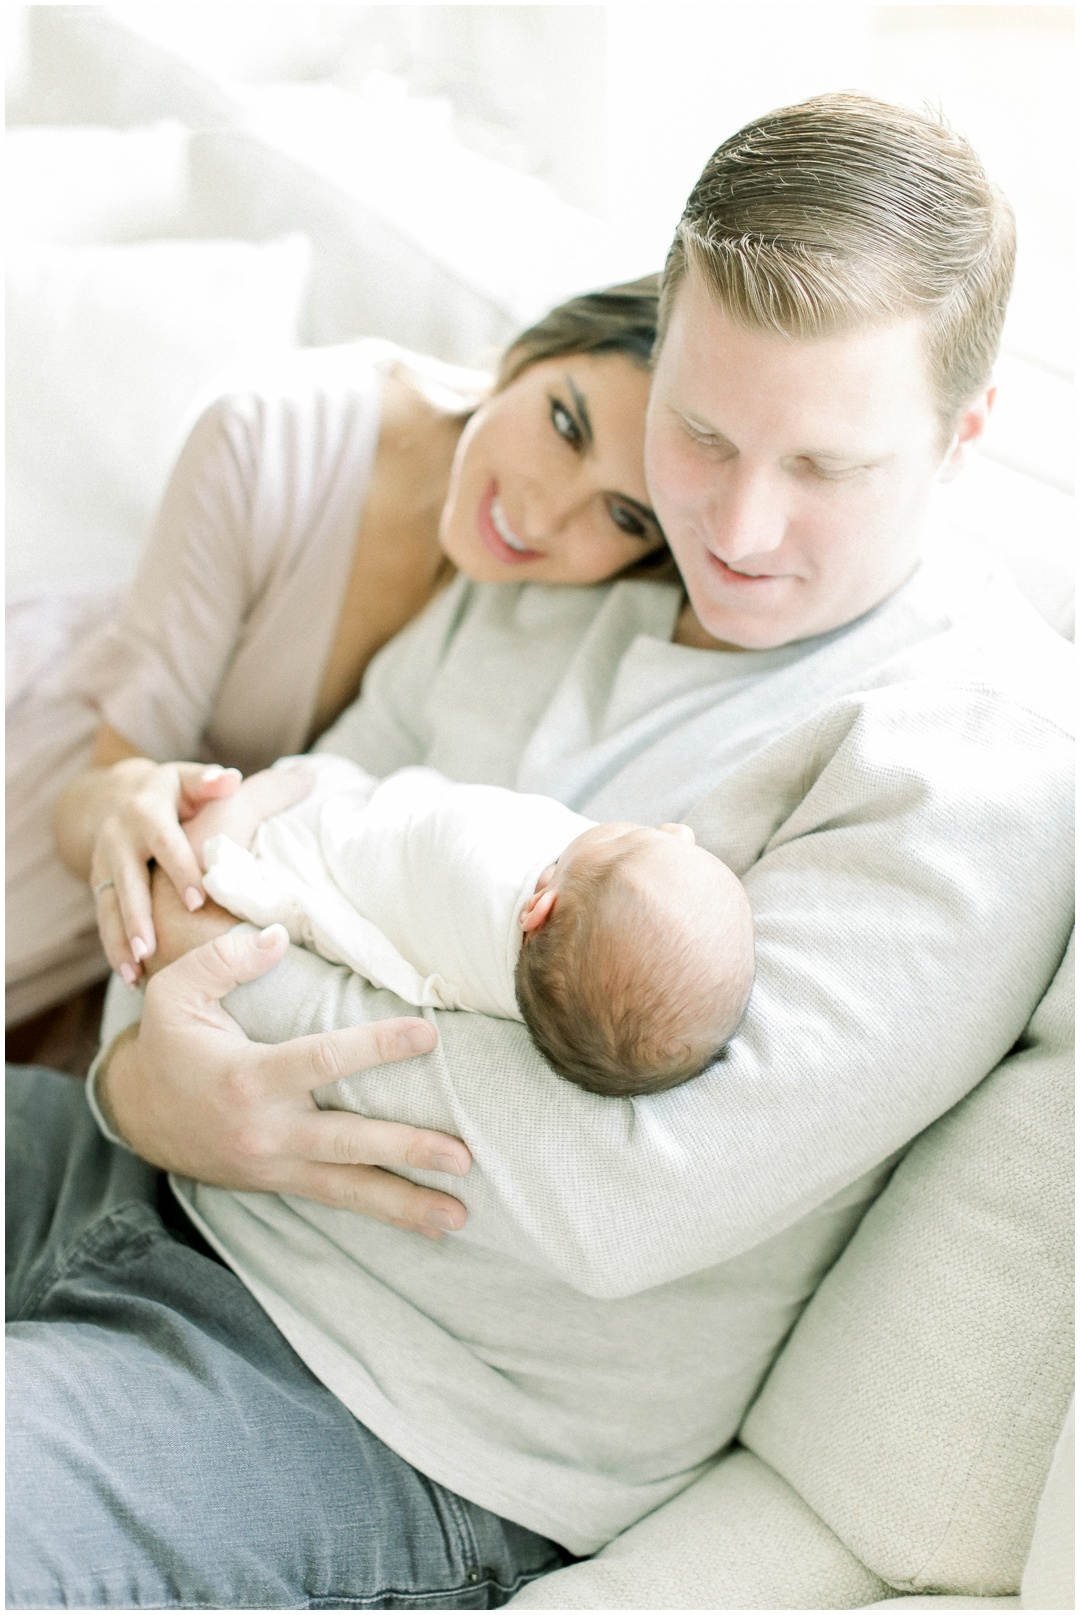 Orange_County_Newborn_Photographer_Newport_Beach_Family_Photographer_Newport_Beach_Newborn_Photographer_Orange_County_Family_Photographer_Cori_Kleckner_Photography_Huntington_Beach_Photographer_Dicey_Perrine_Brett_Perrine_2536.jpg